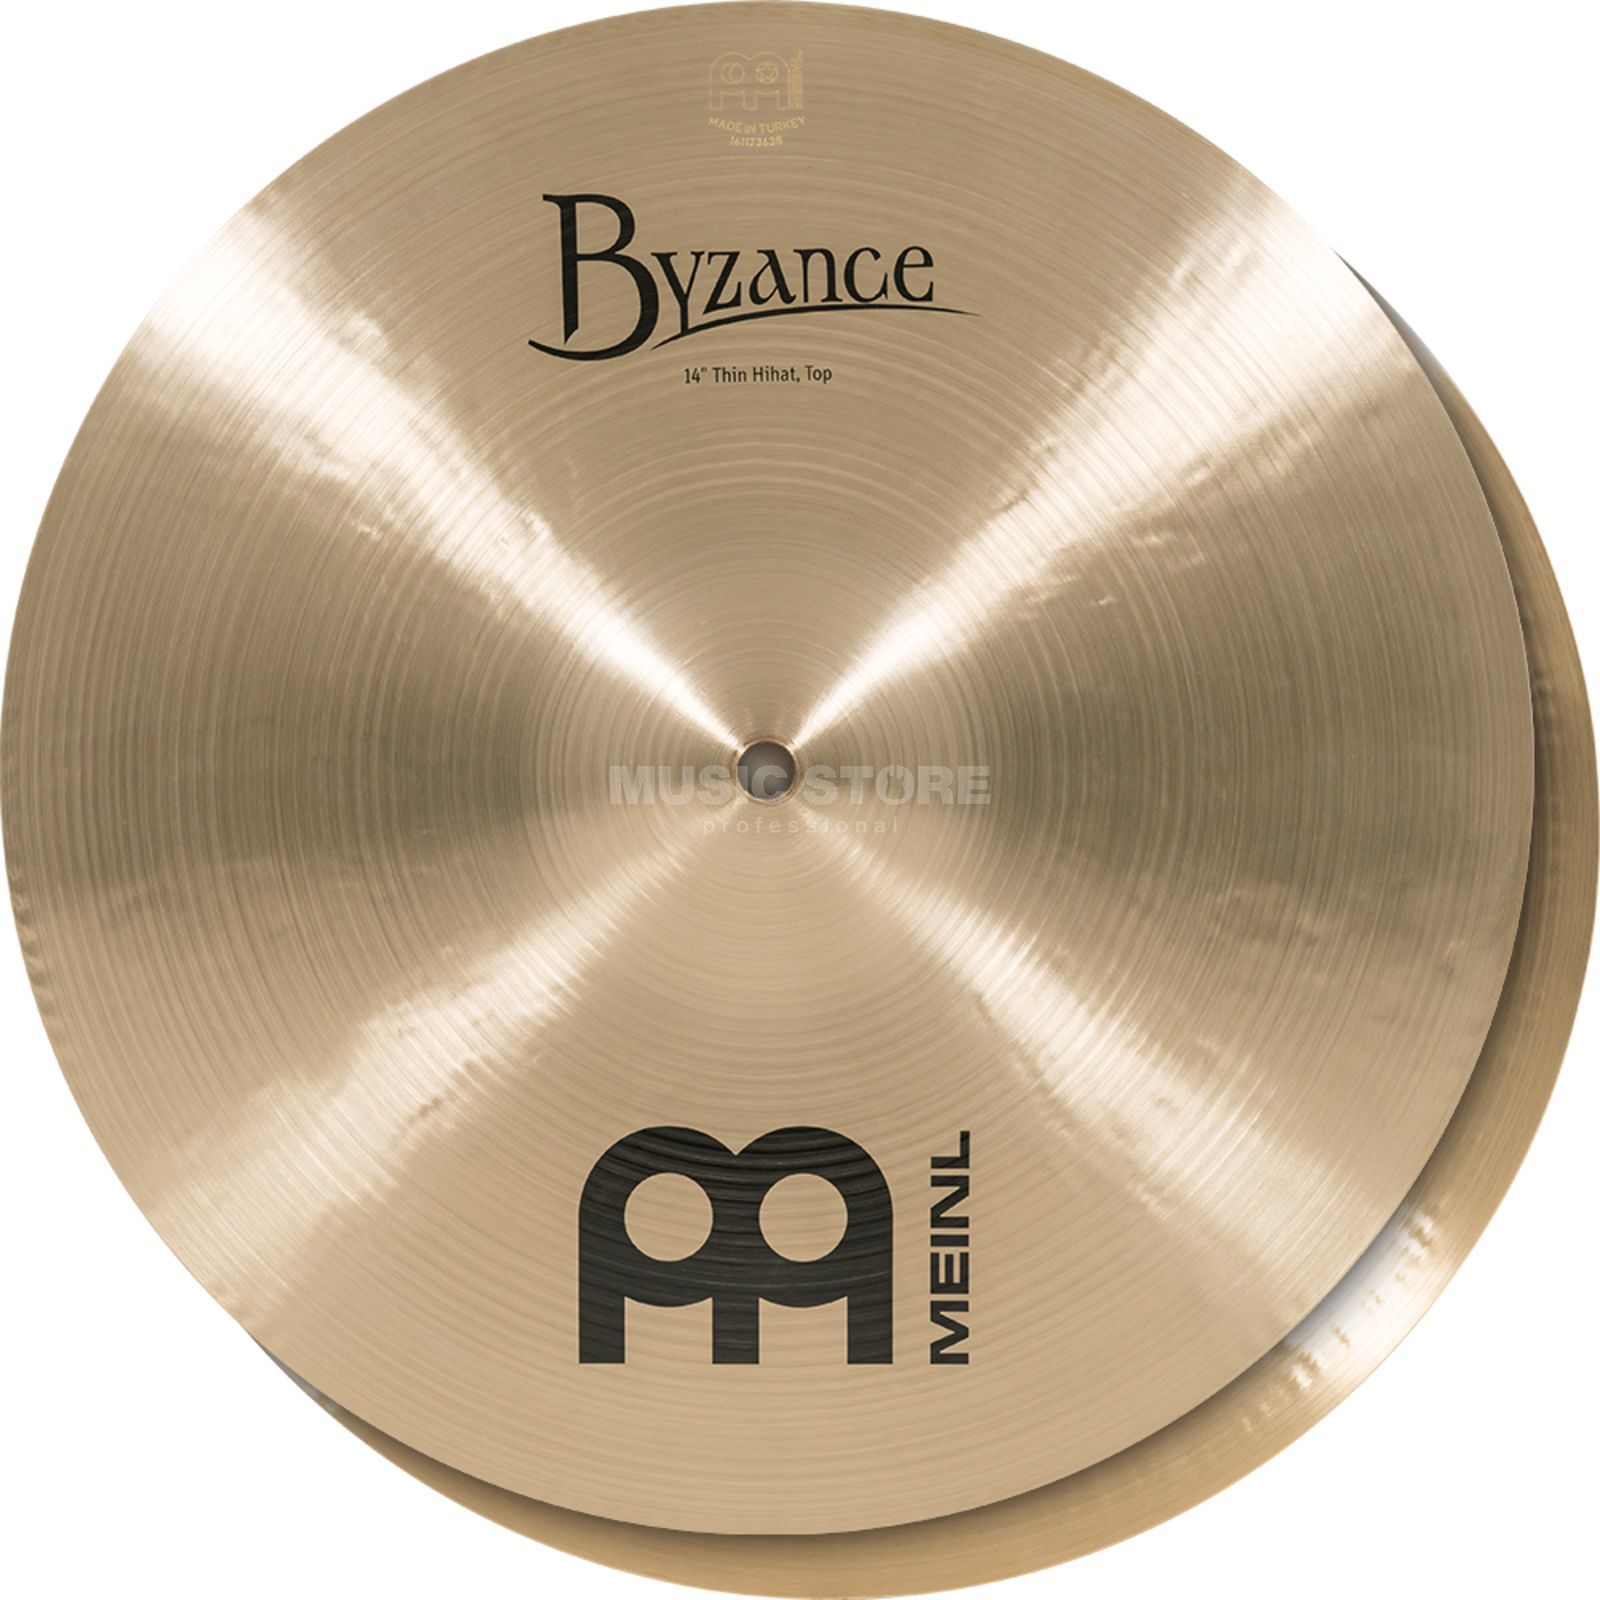 "Meinl Byzance Thin HiHat 14"", B14TH, finition traditionnelle Image du produit"